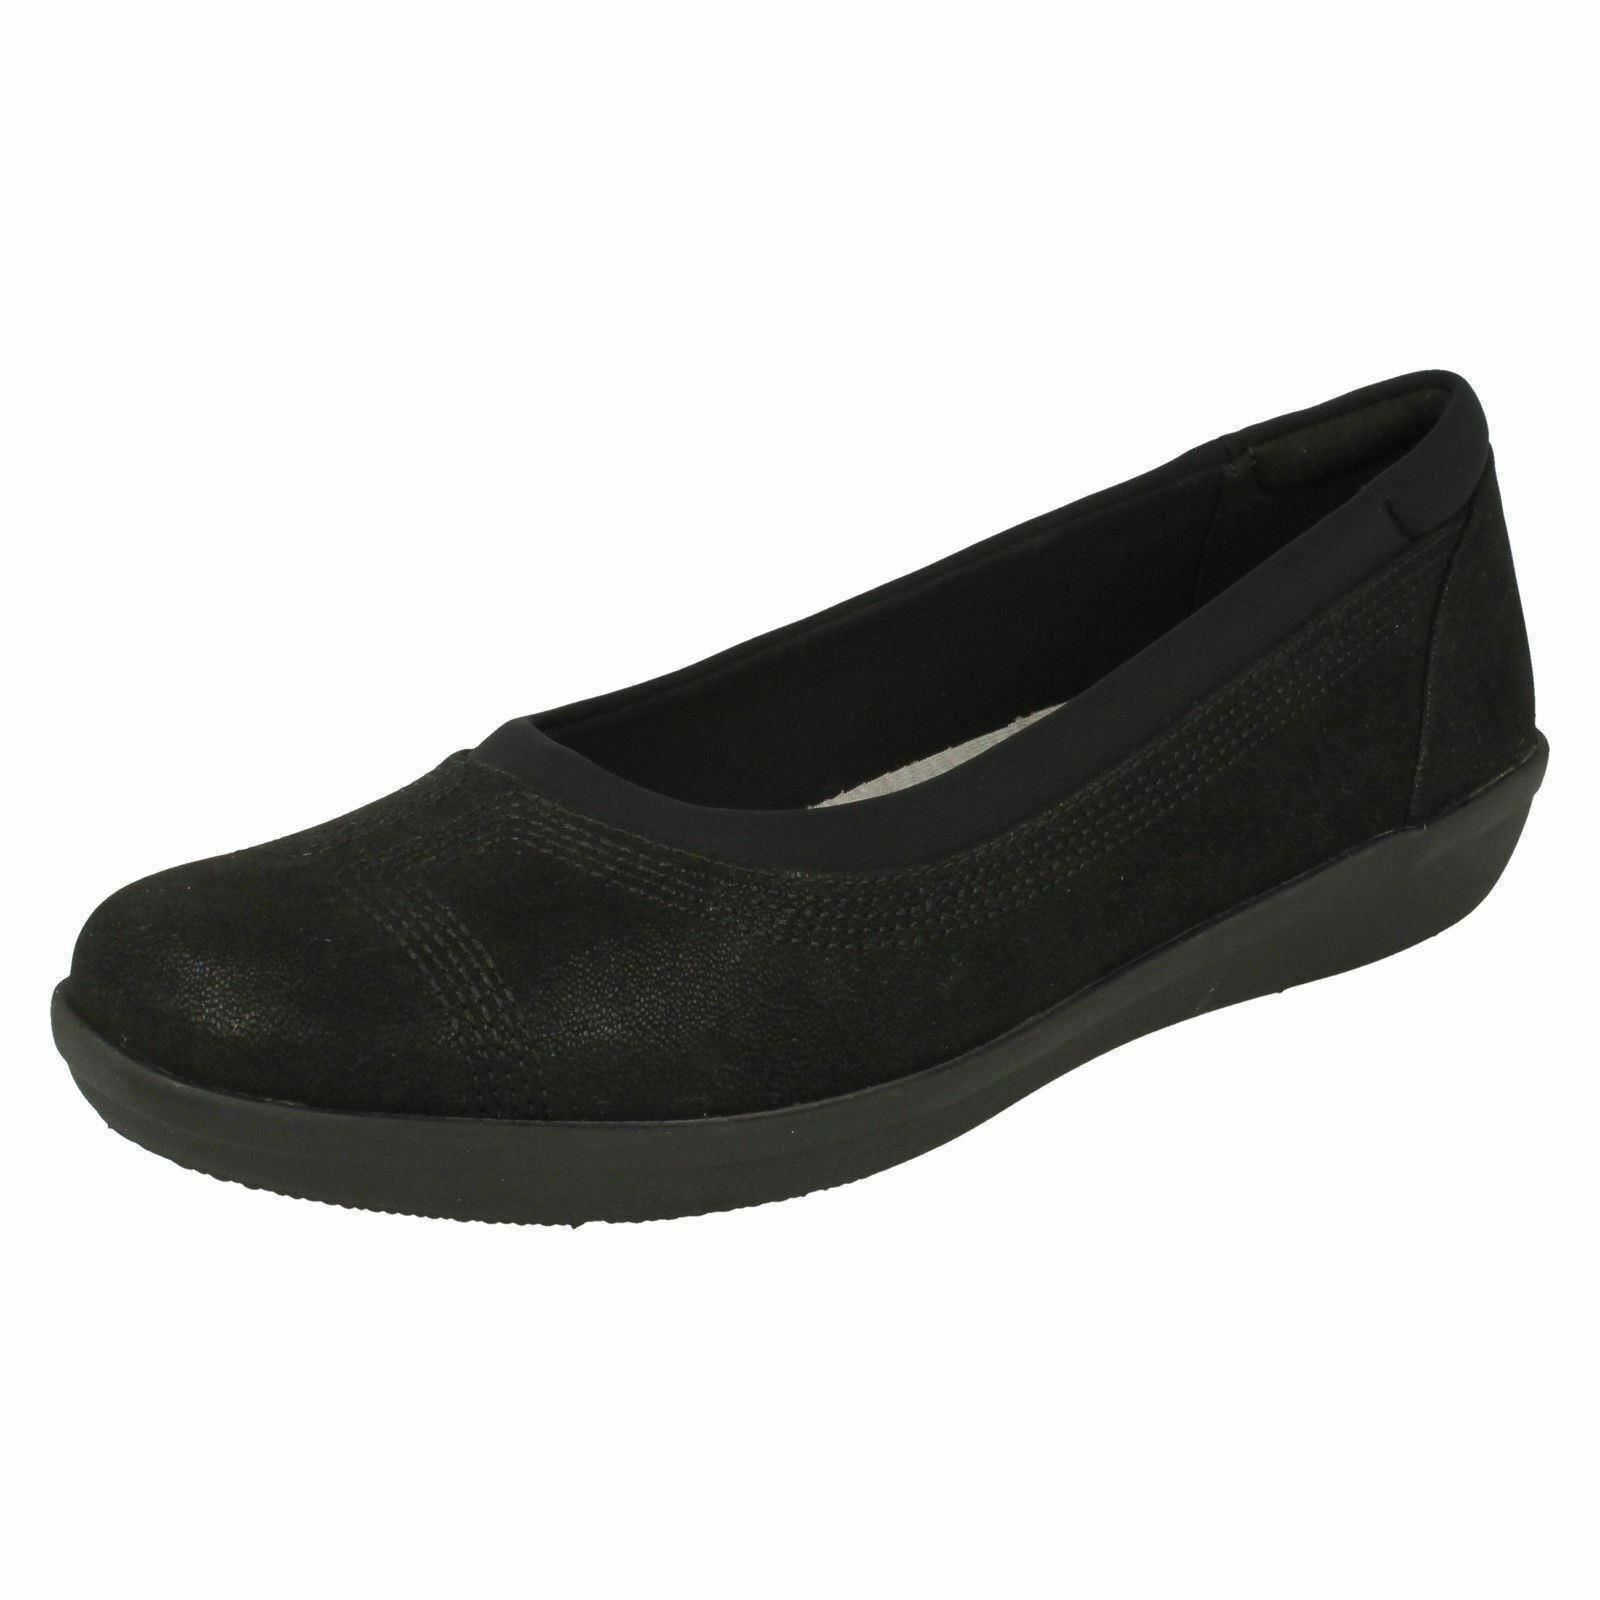 Signore Clarks cloudsteppers